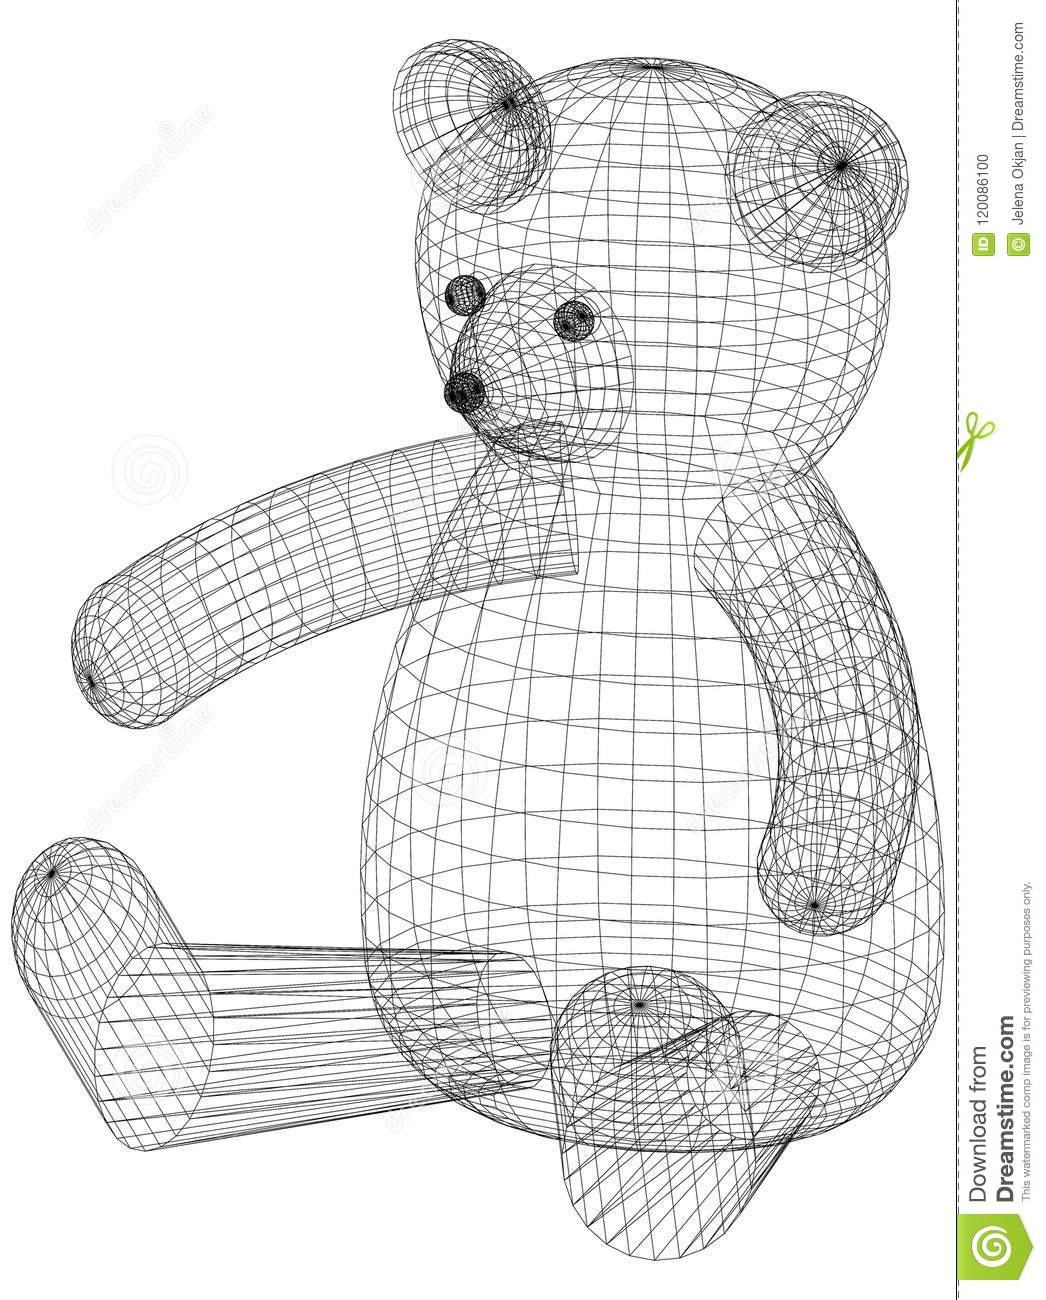 Ours Toy Architect Blueprint - d isolement